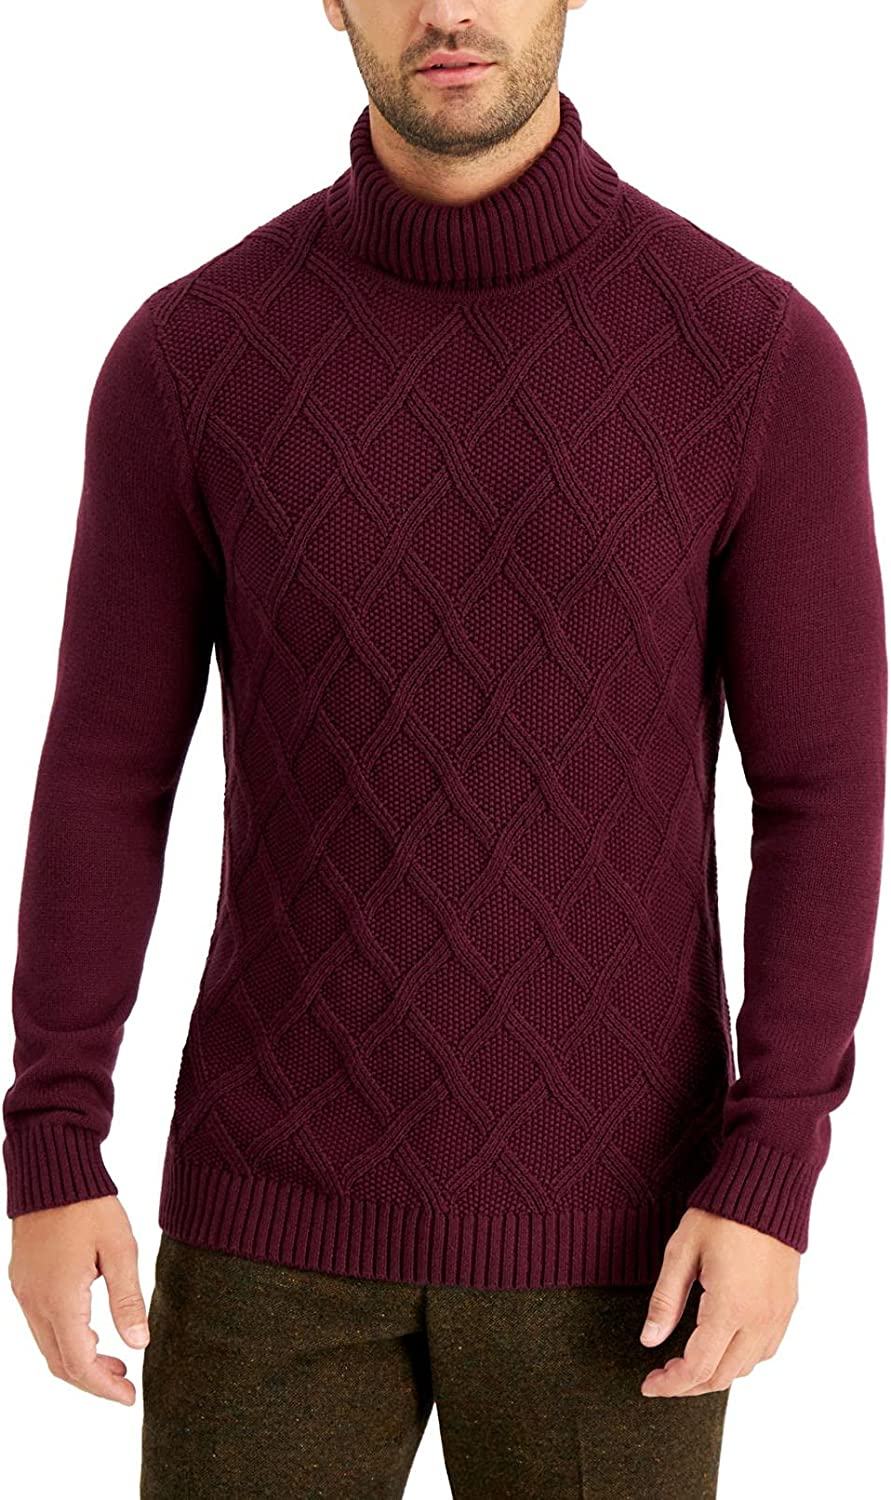 Tasso Elba Mens Sweater Small Knit Pullover Re Some reservation Turtleneck Chunky Max 68% OFF